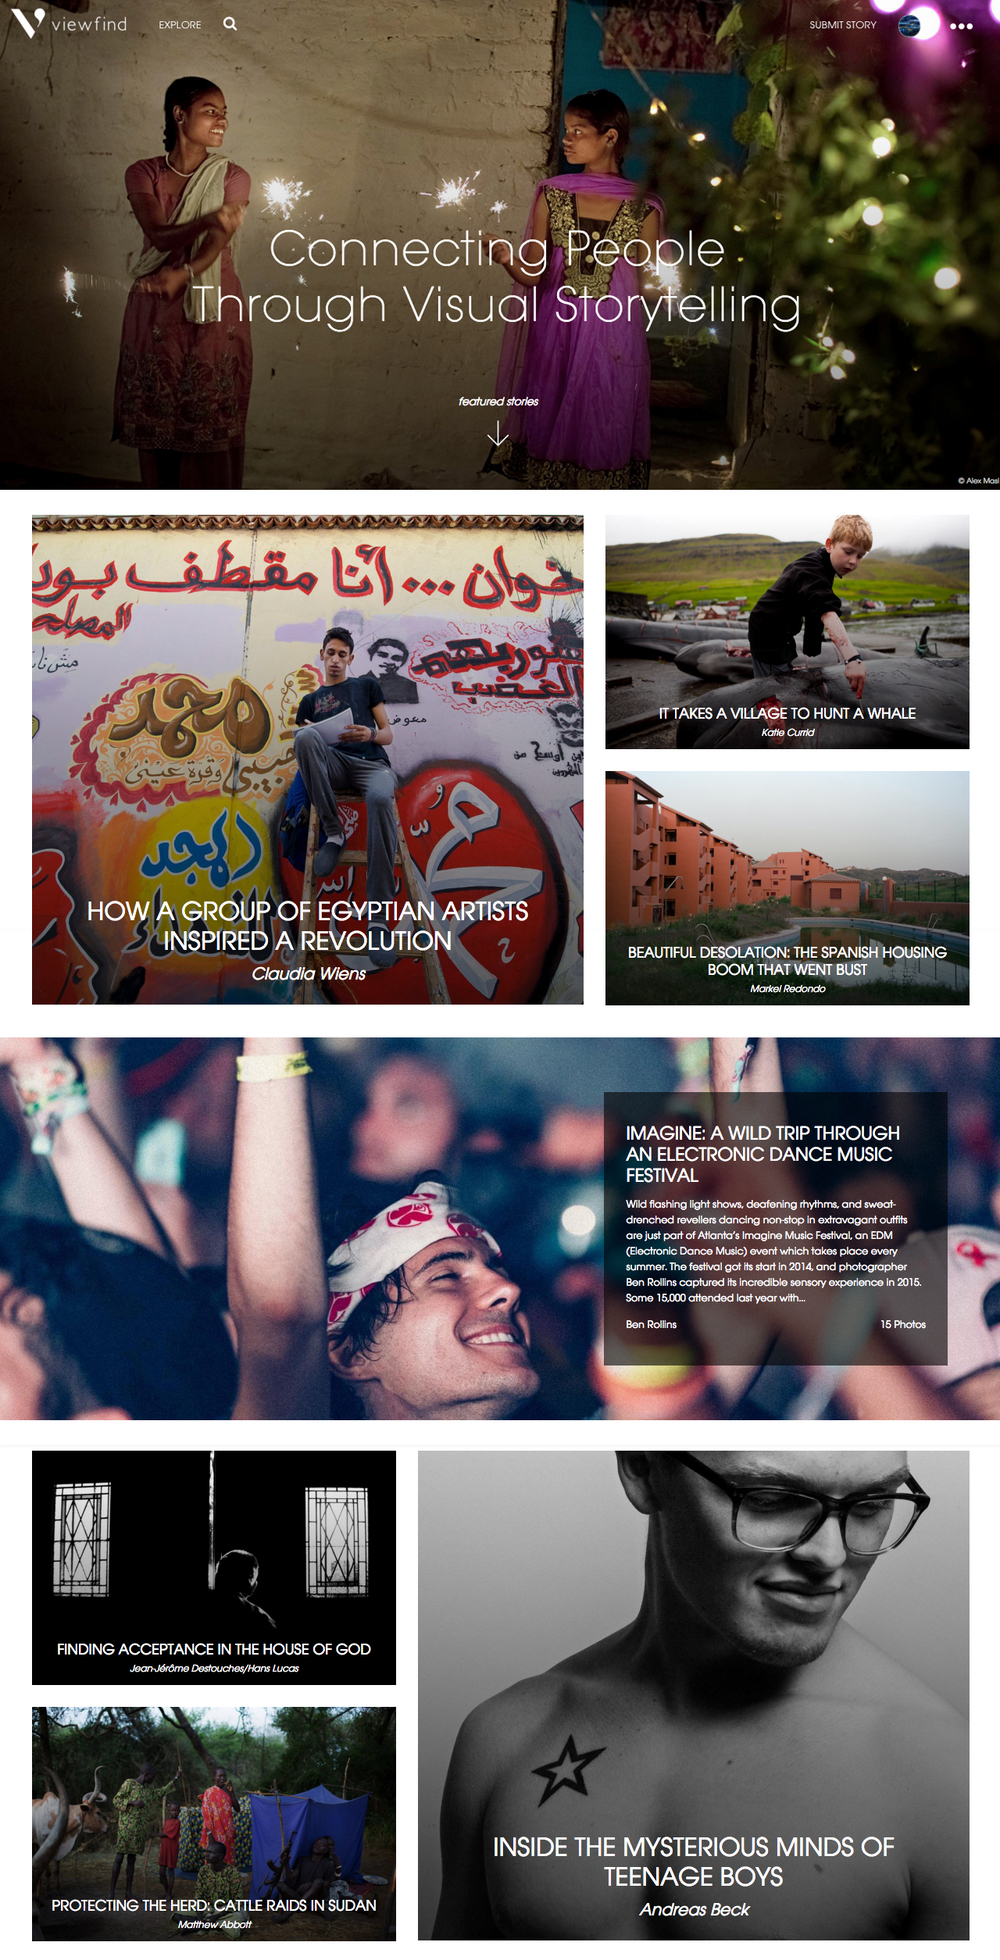 Frontpage of ViewFind.com - January 2016